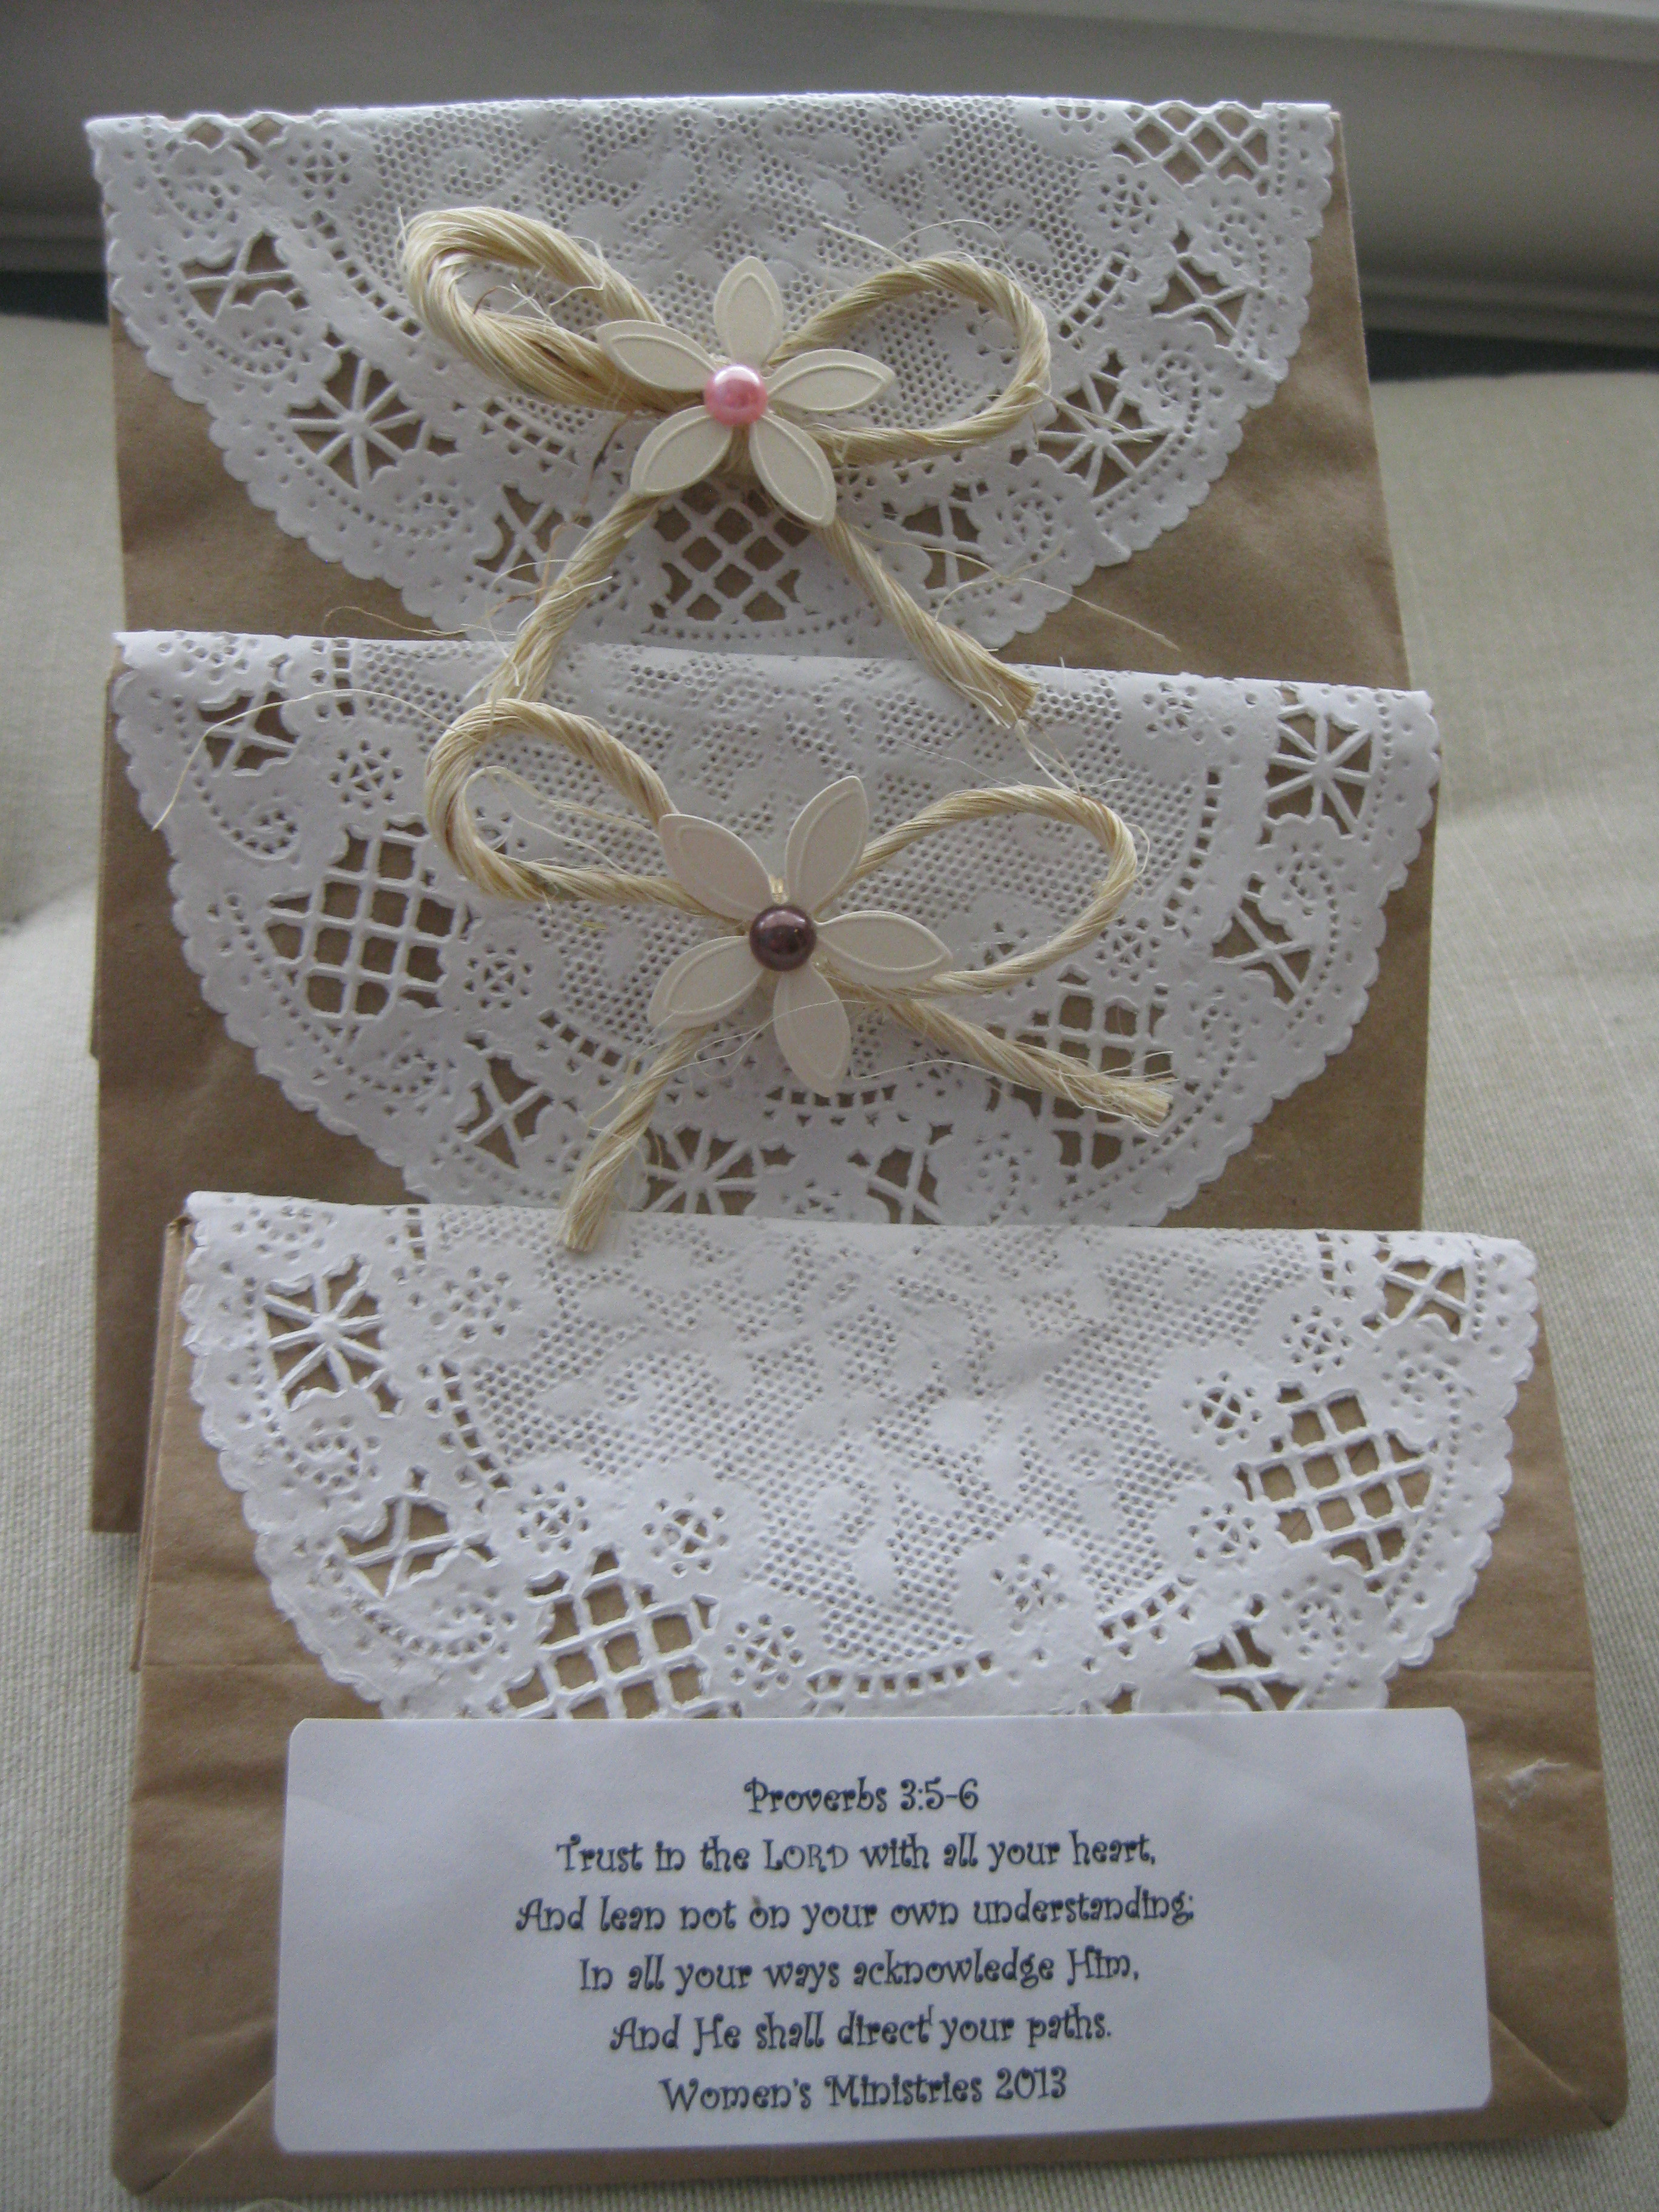 Best ideas about Mother'S Day Gift Ideas For Church Ladies . Save or Pin Crafts Fruitful Words Now.